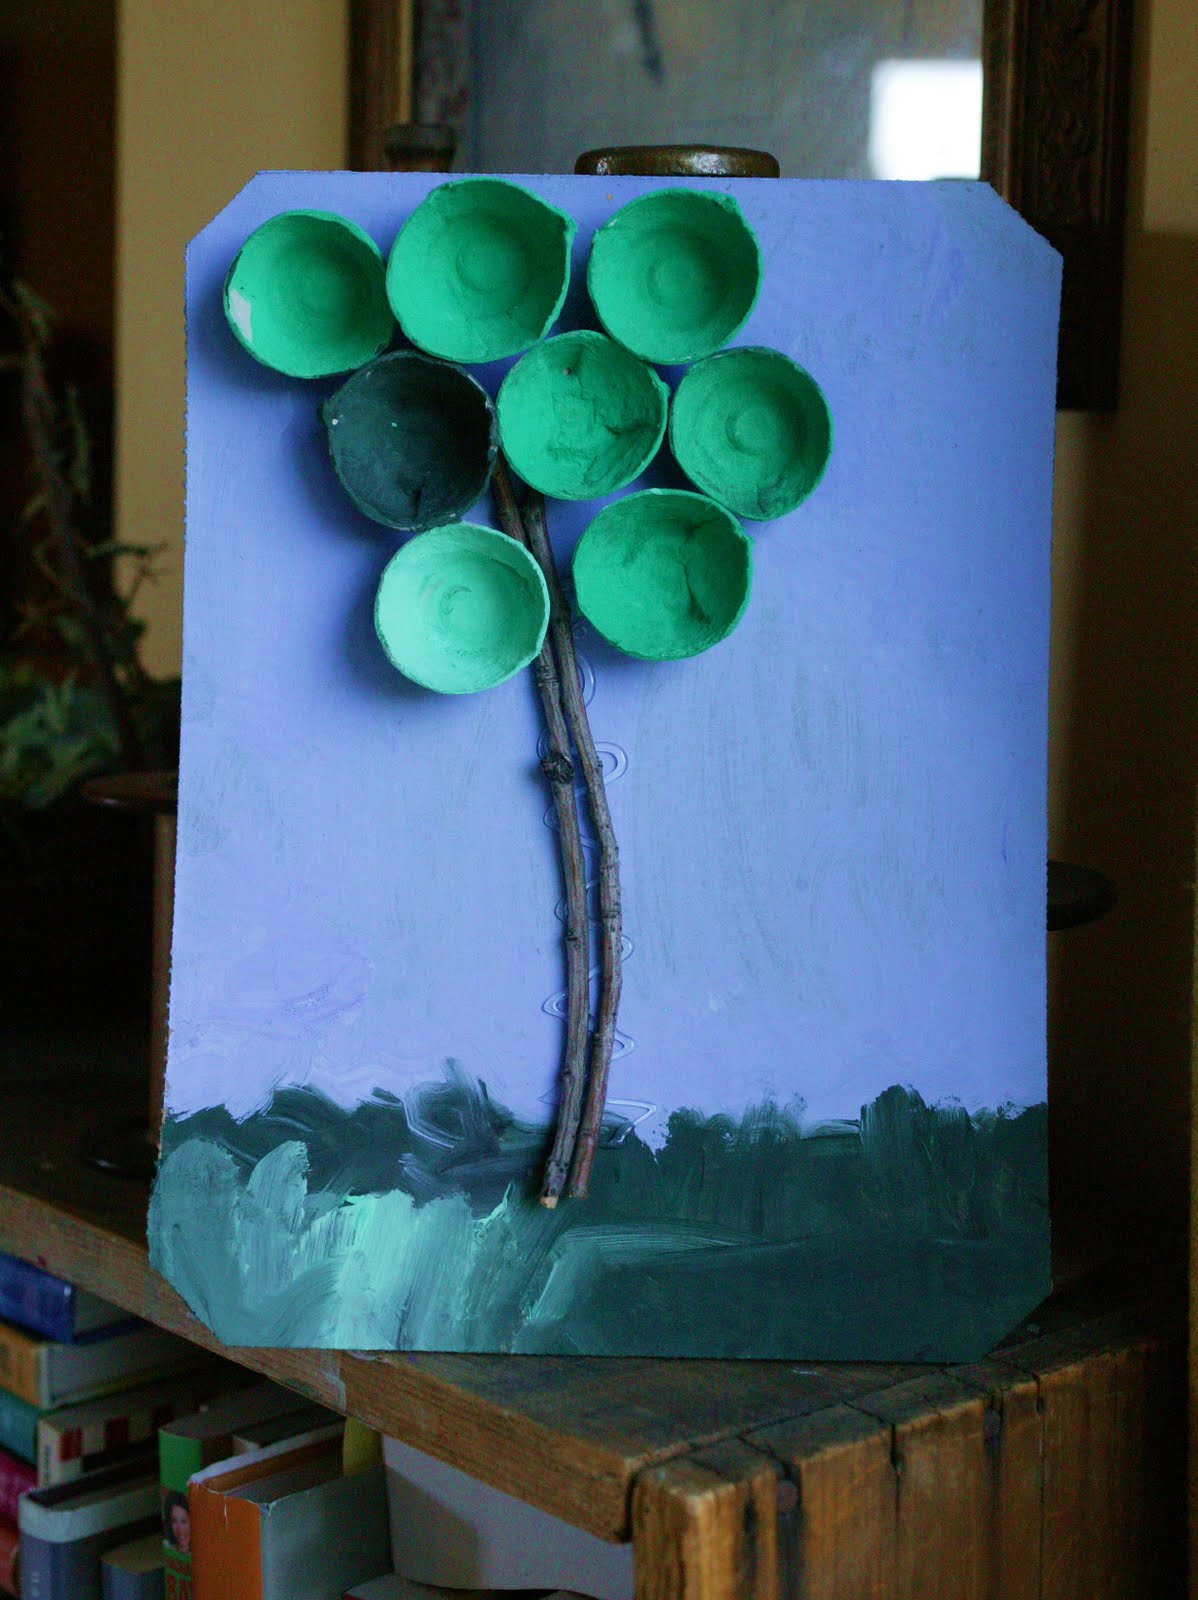 Views from my window recycled art egg carton trees for How to recycle egg cartons